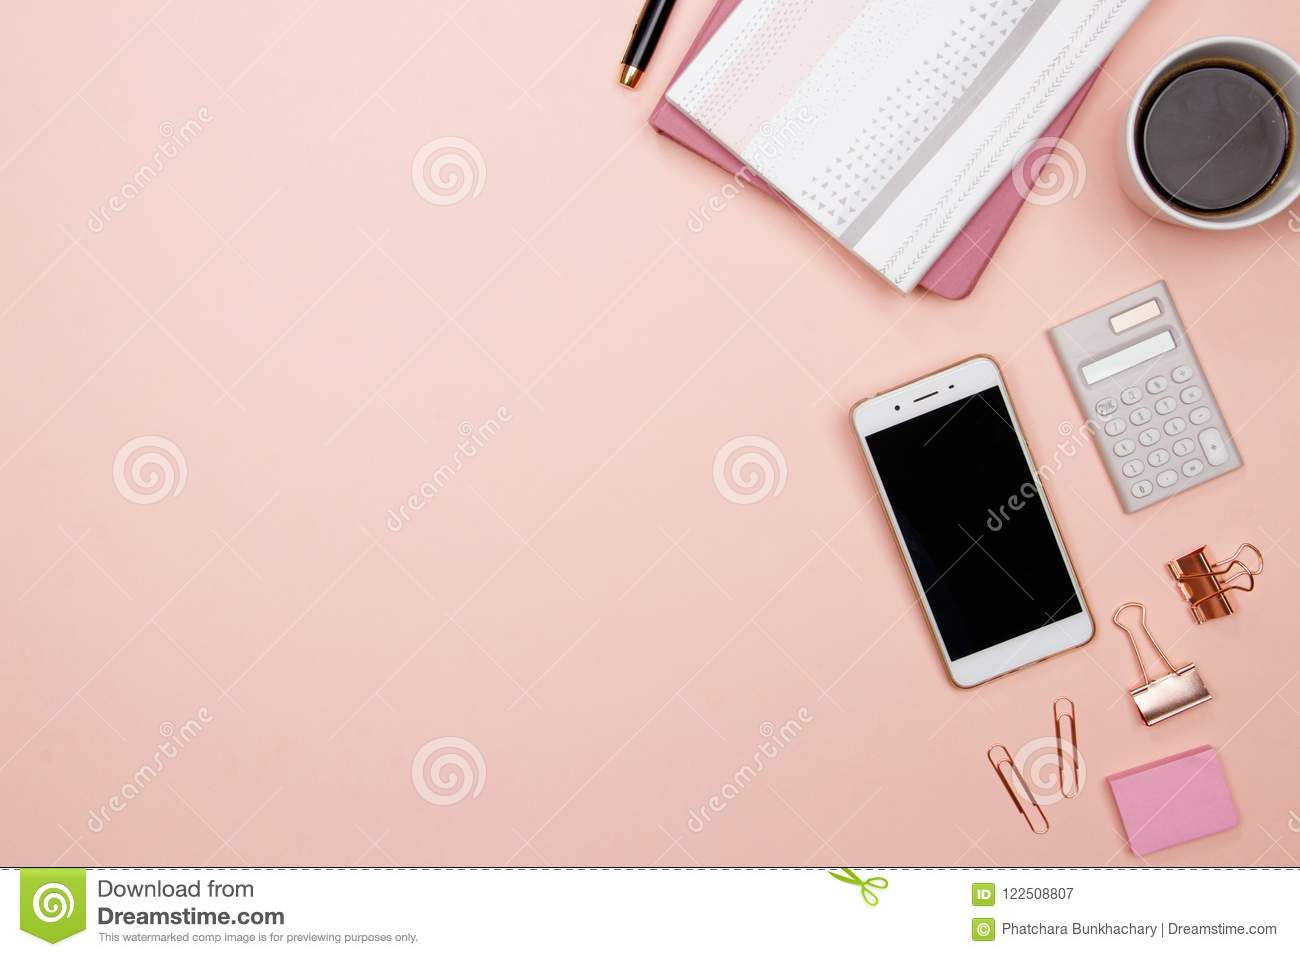 Superbe Office Table Desk With Smartphone And Other Office Supplies On Pink  Background. Top View With Copy Space, Flat Lay.